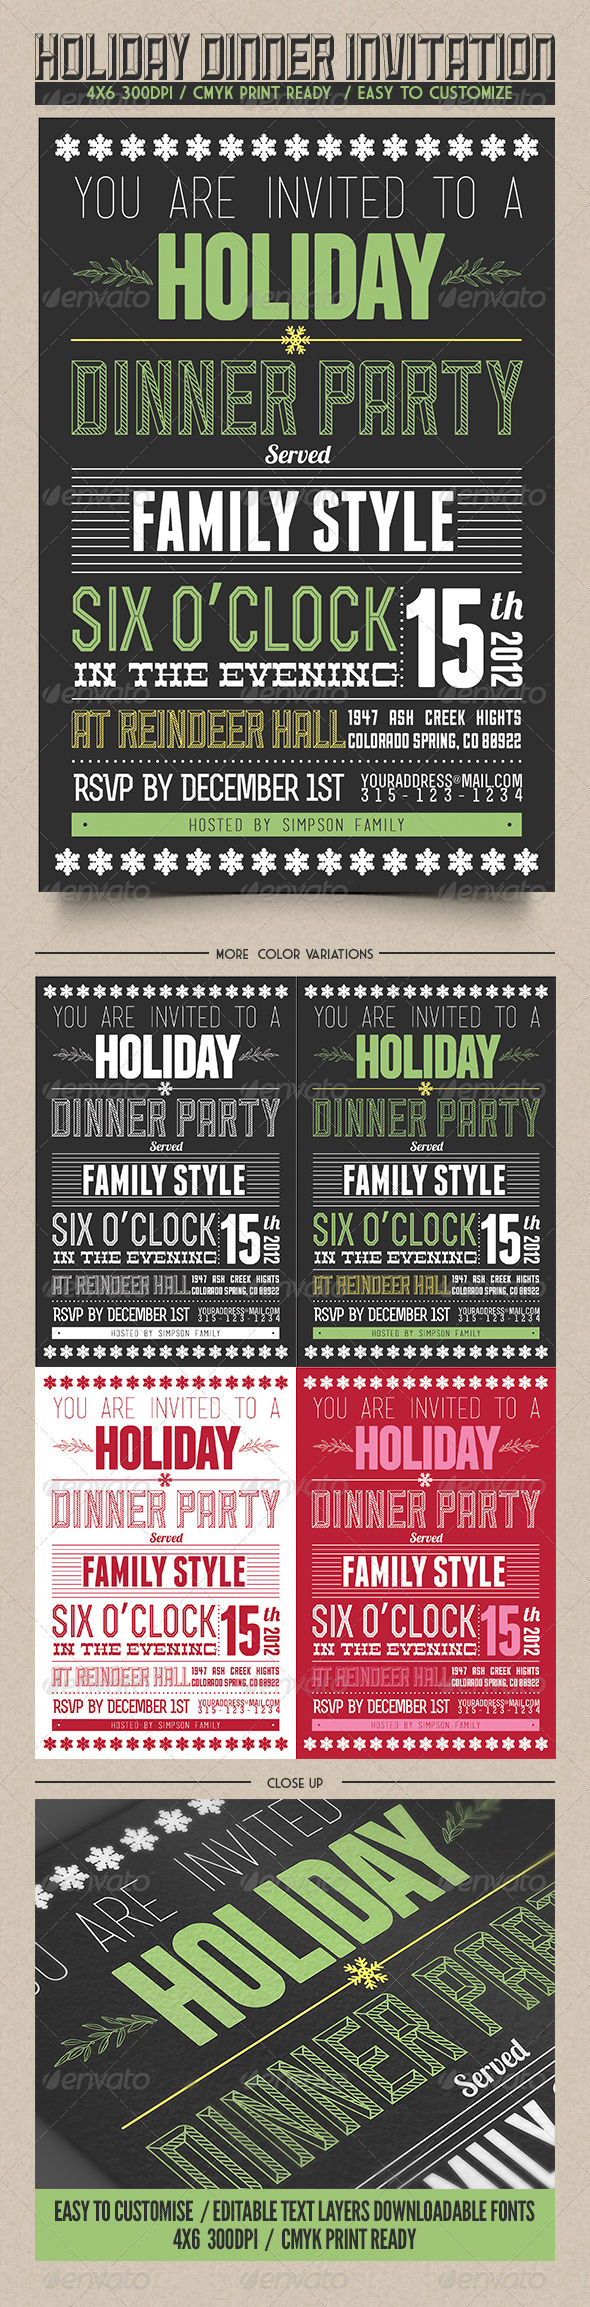 company holiday party invitation templates - Picture Ideas References